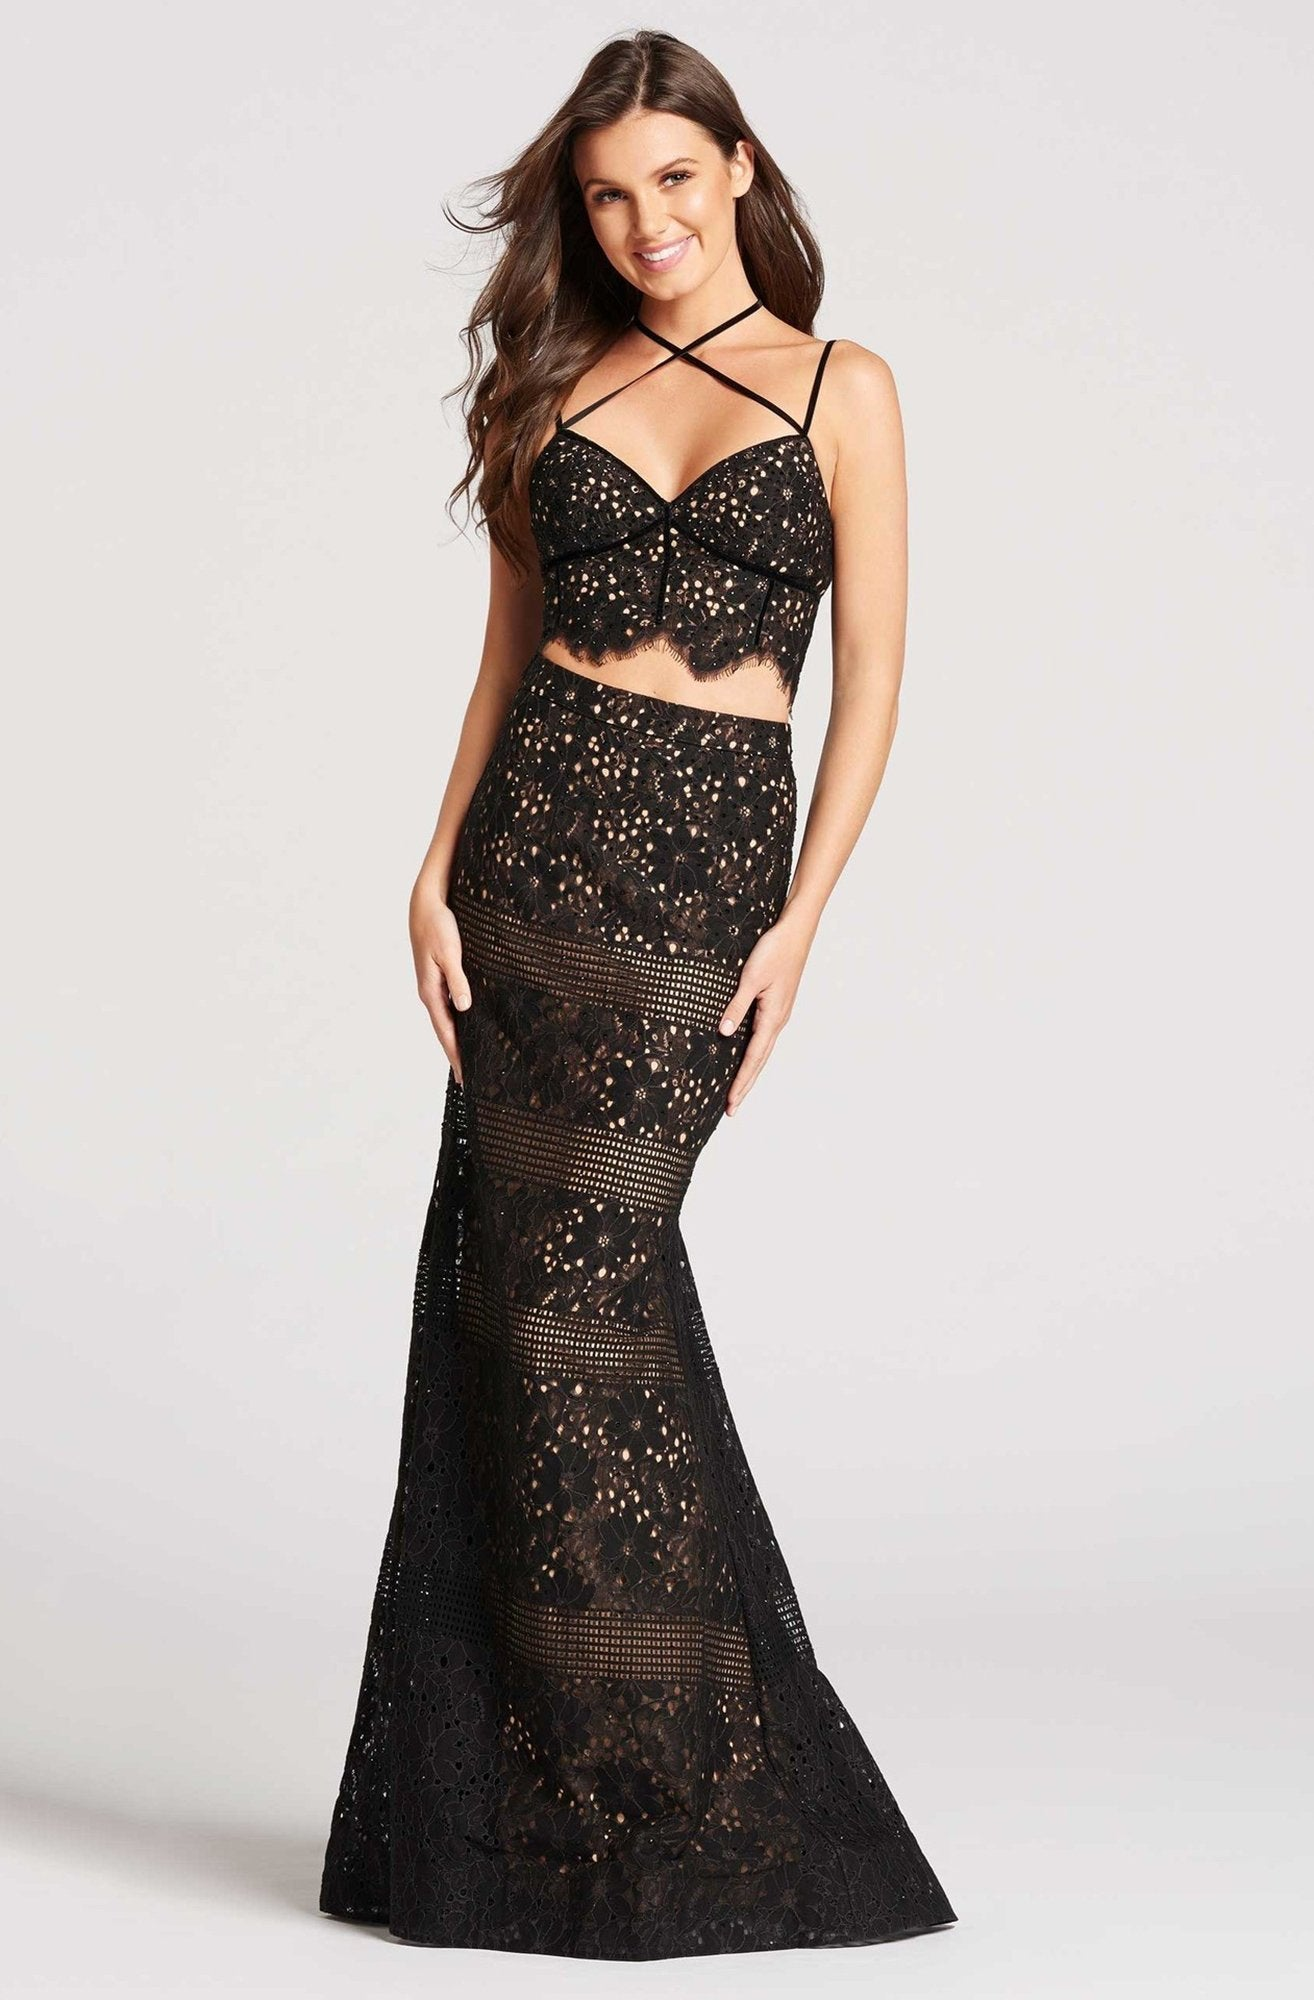 Ellie Wilde - Two Piece Crisscross Fitted Trumpet Gown EW118058 In Black and Neutral